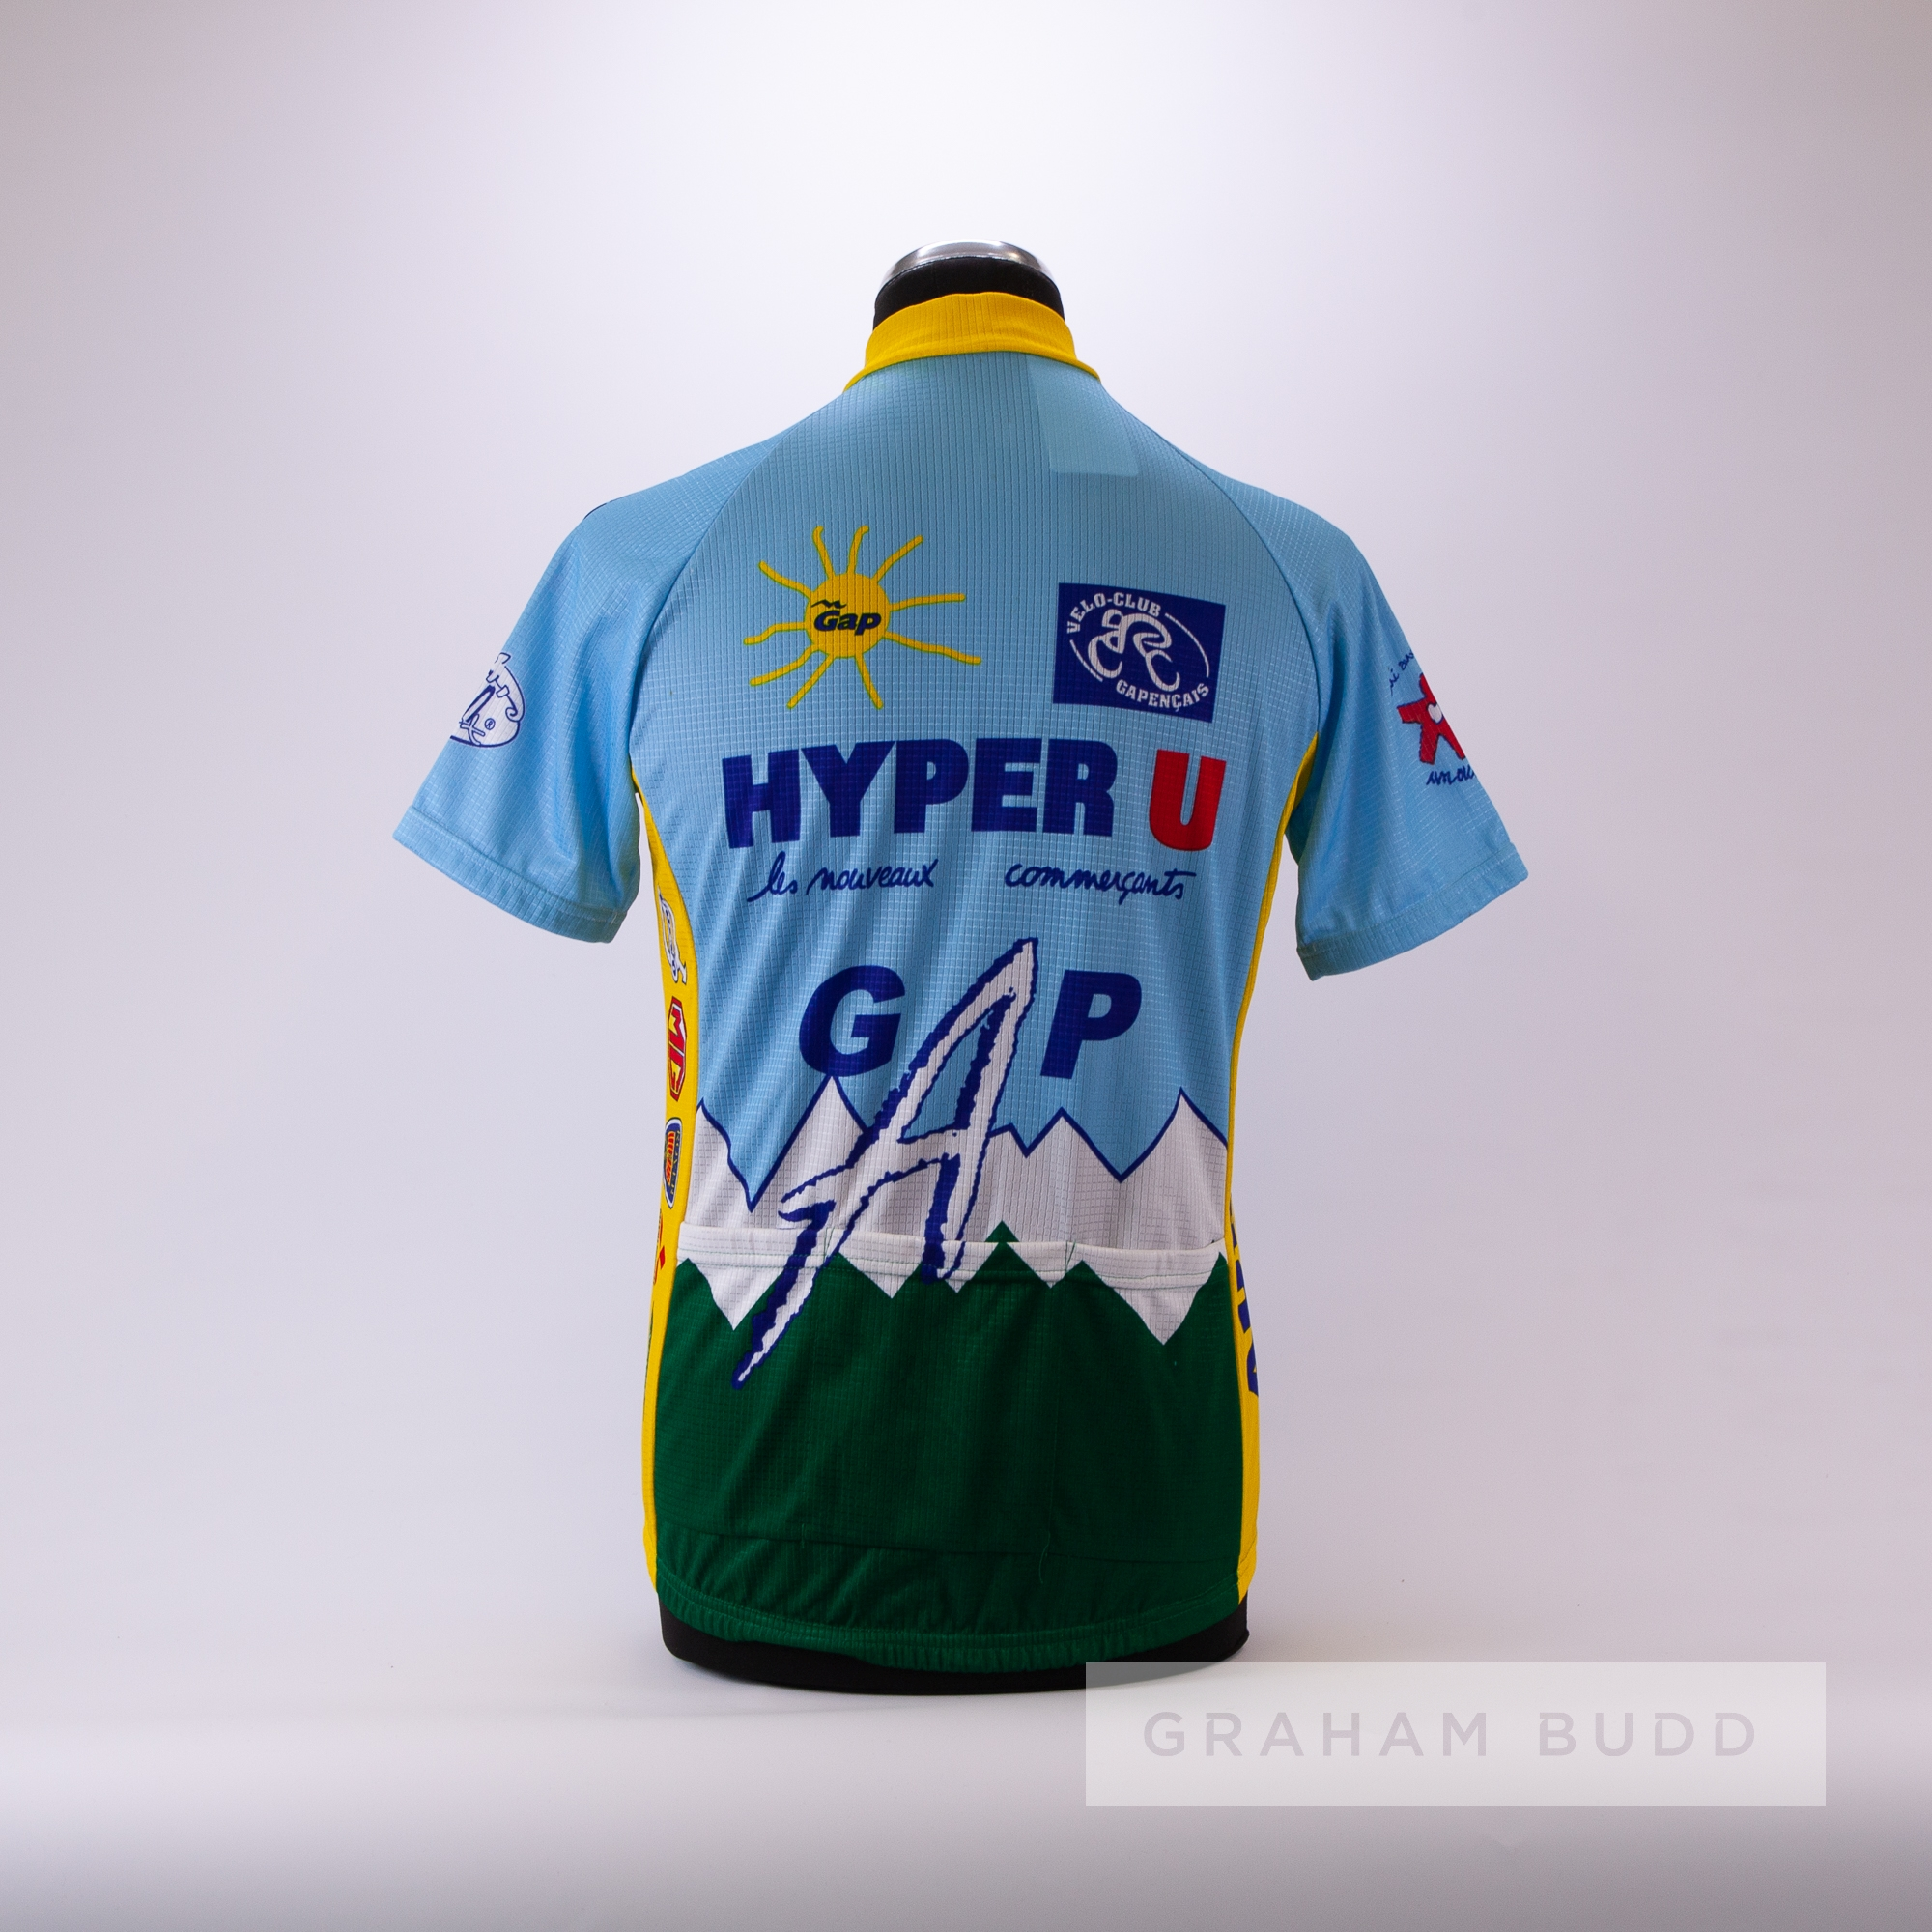 1991 blue, white, yellow and green French Hyper U Gap Cycling race jersey, scarce, polyester - Image 4 of 4